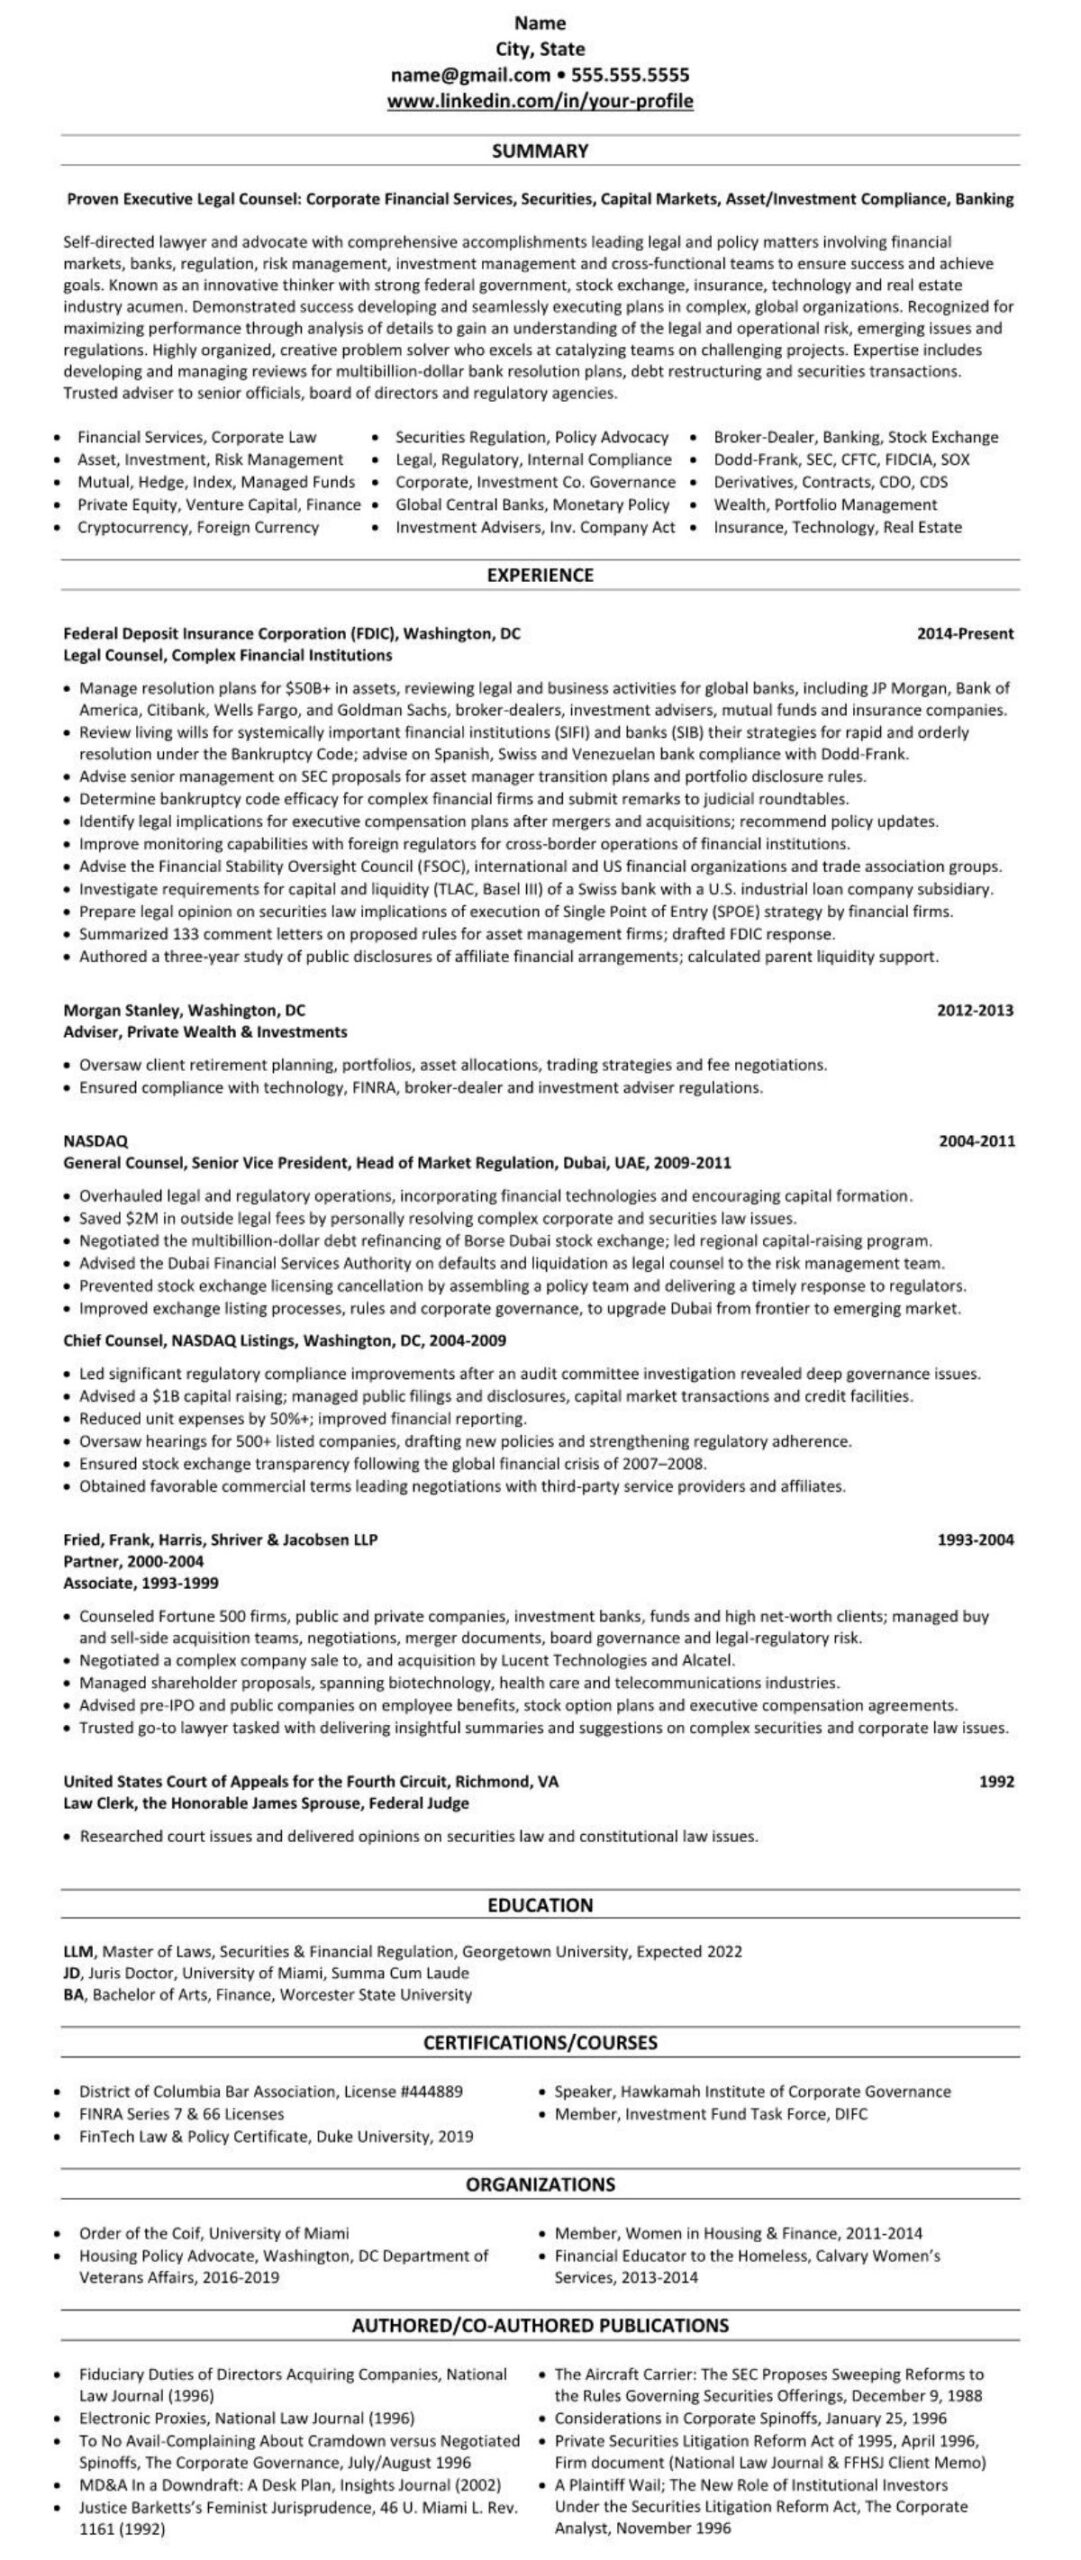 linkedin profile resume example attorney lawyer legal counsel writers reddit promoter job Resume Linkedin Resume Writers Reddit